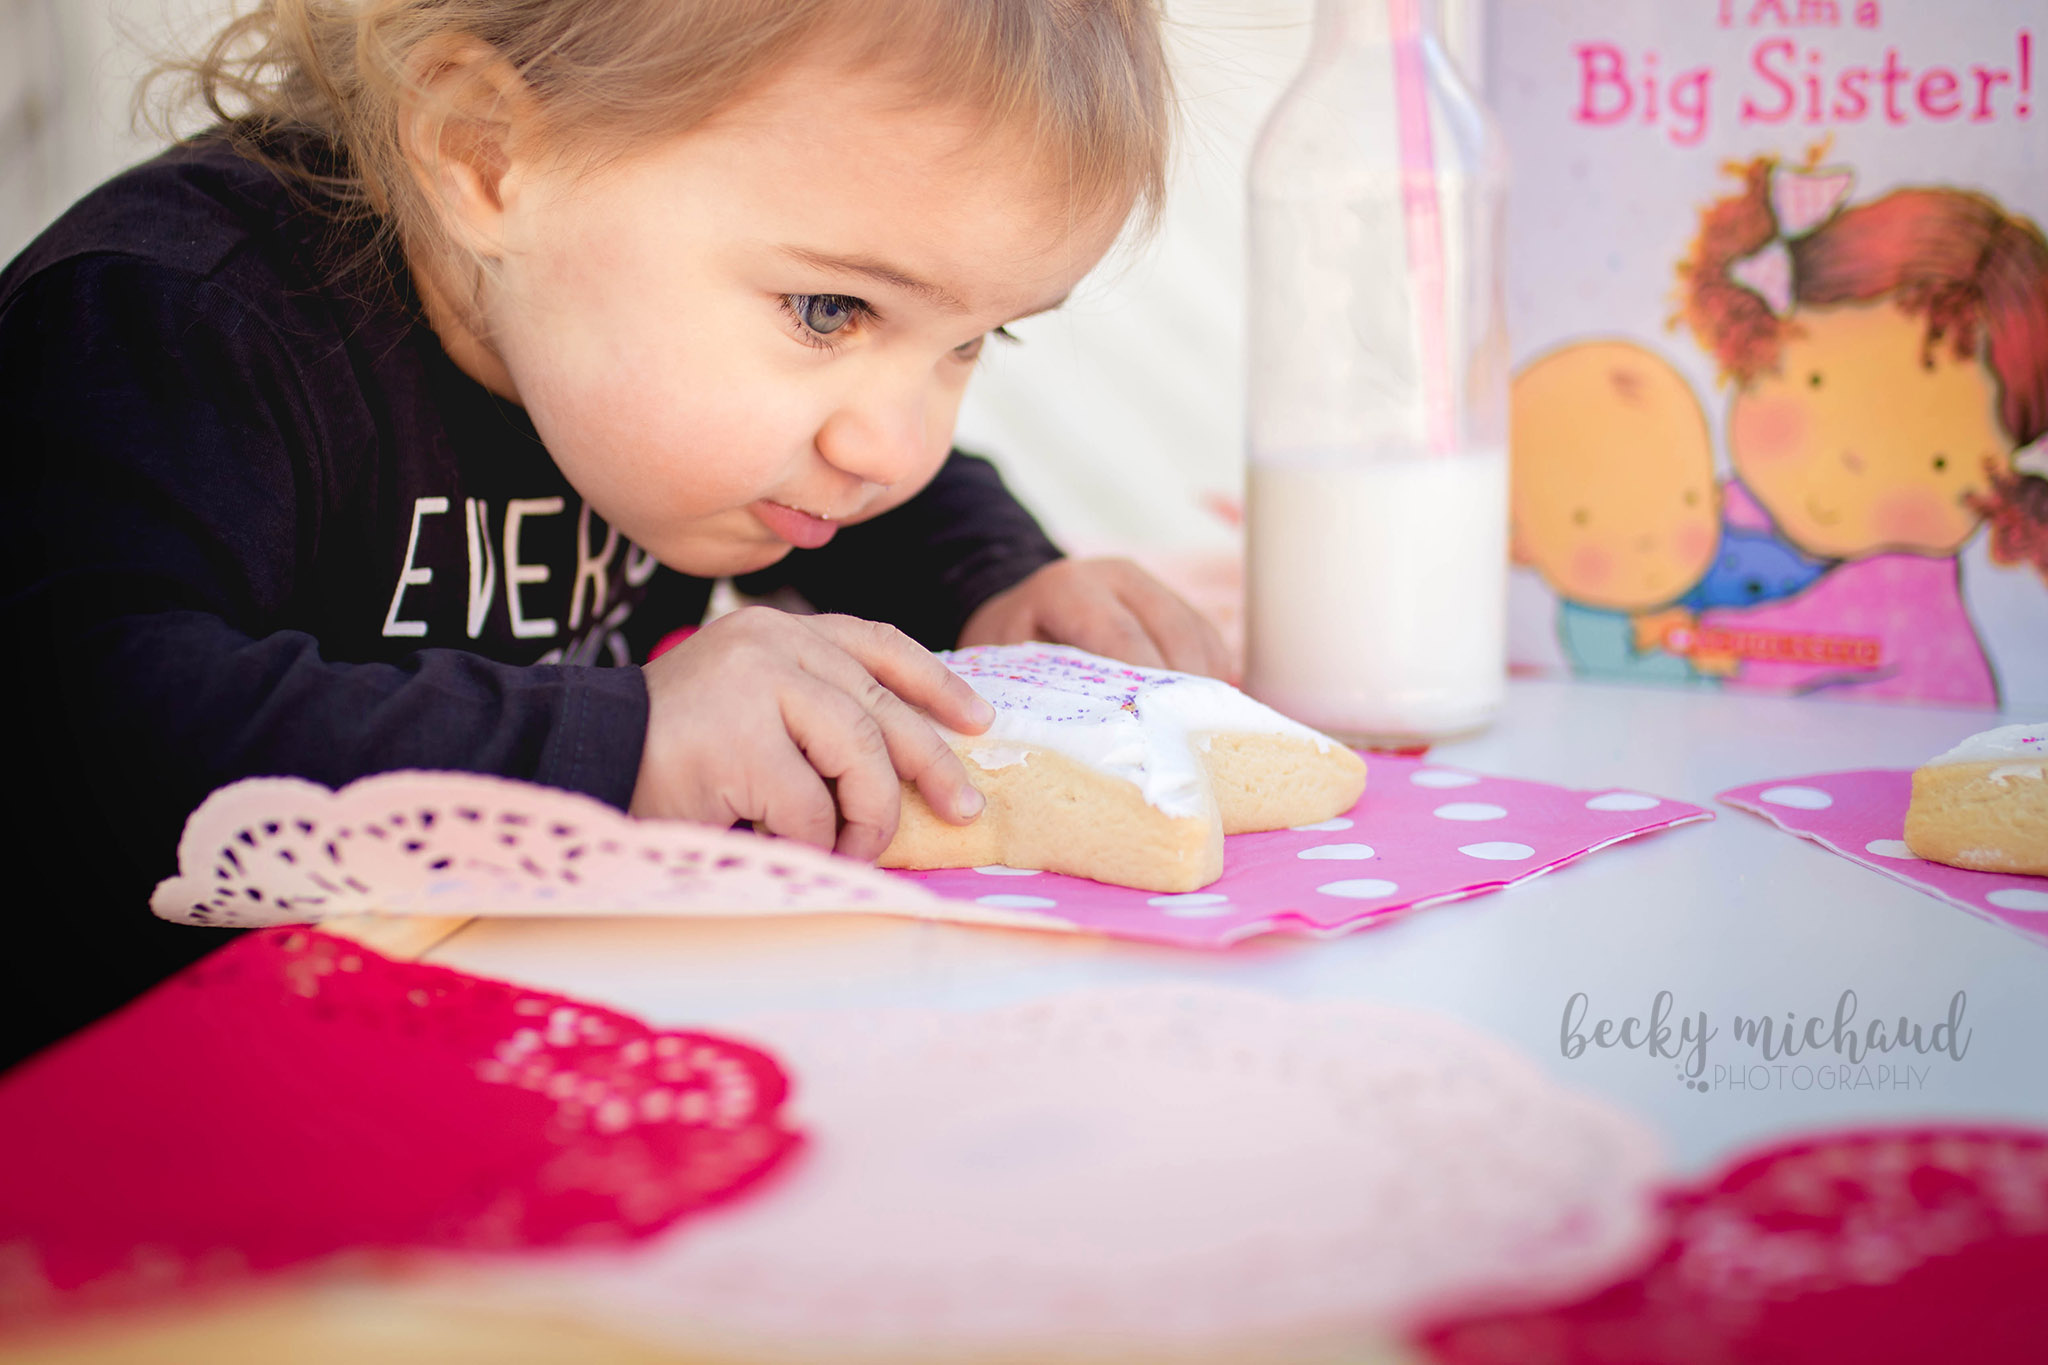 A toddler eating a cookie for a valentines day themed photo session